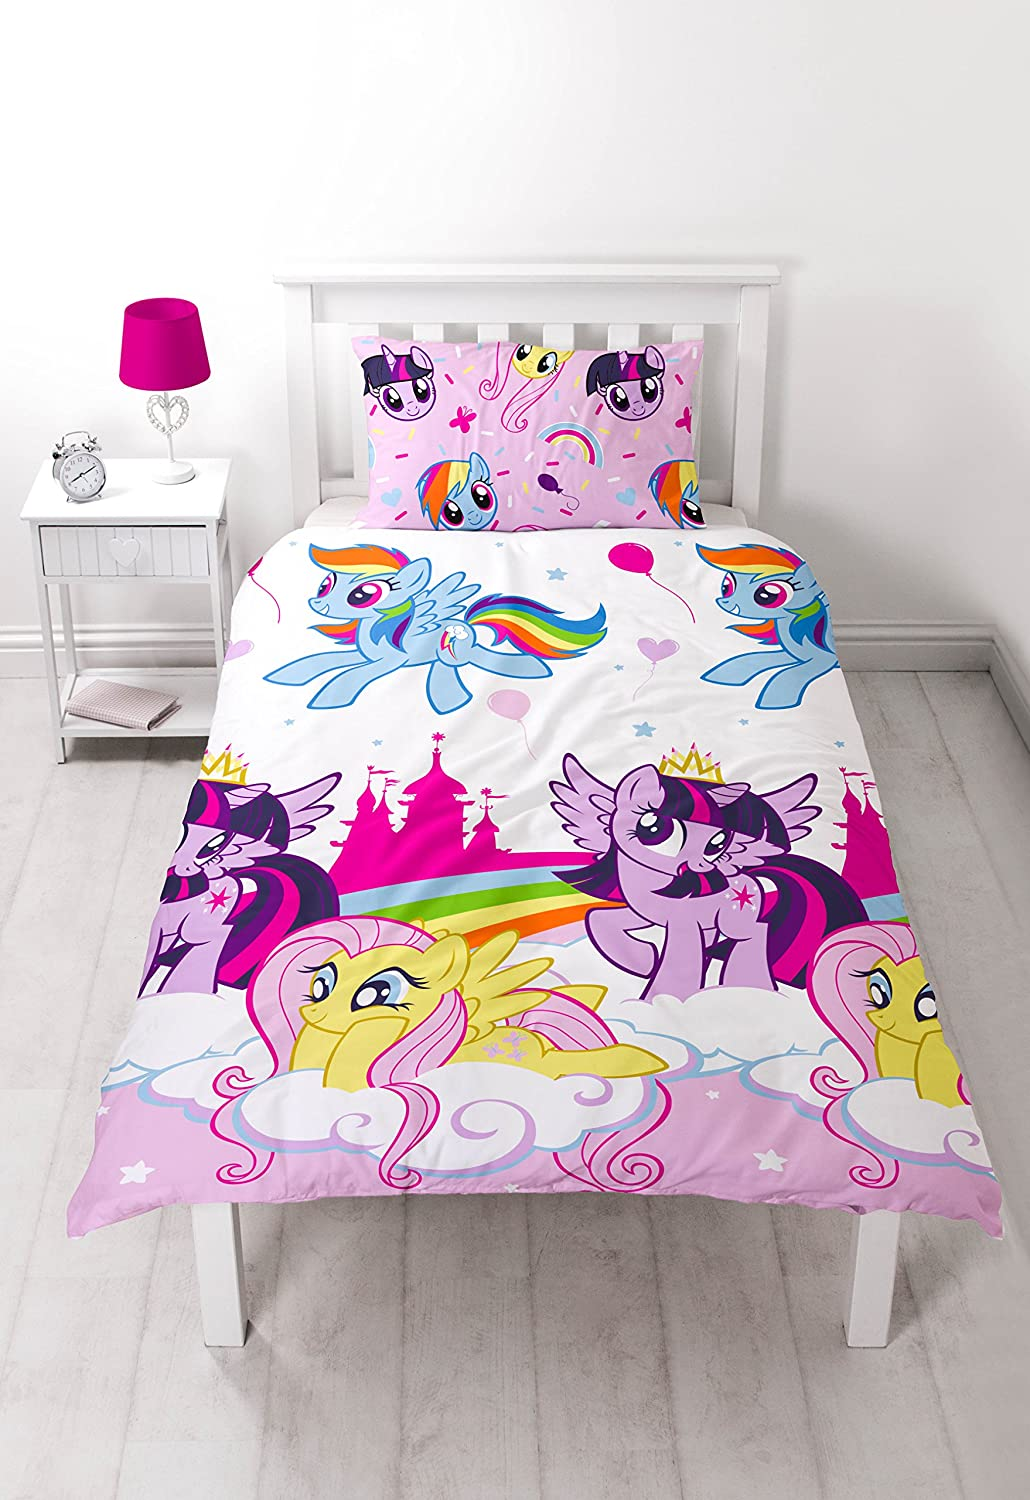 My Little Pony  Equestria  Single Duvet Set   Repeat Print Design   Amazon co uk  Kitchen   Home. My Little Pony  Equestria  Single Duvet Set   Repeat Print Design